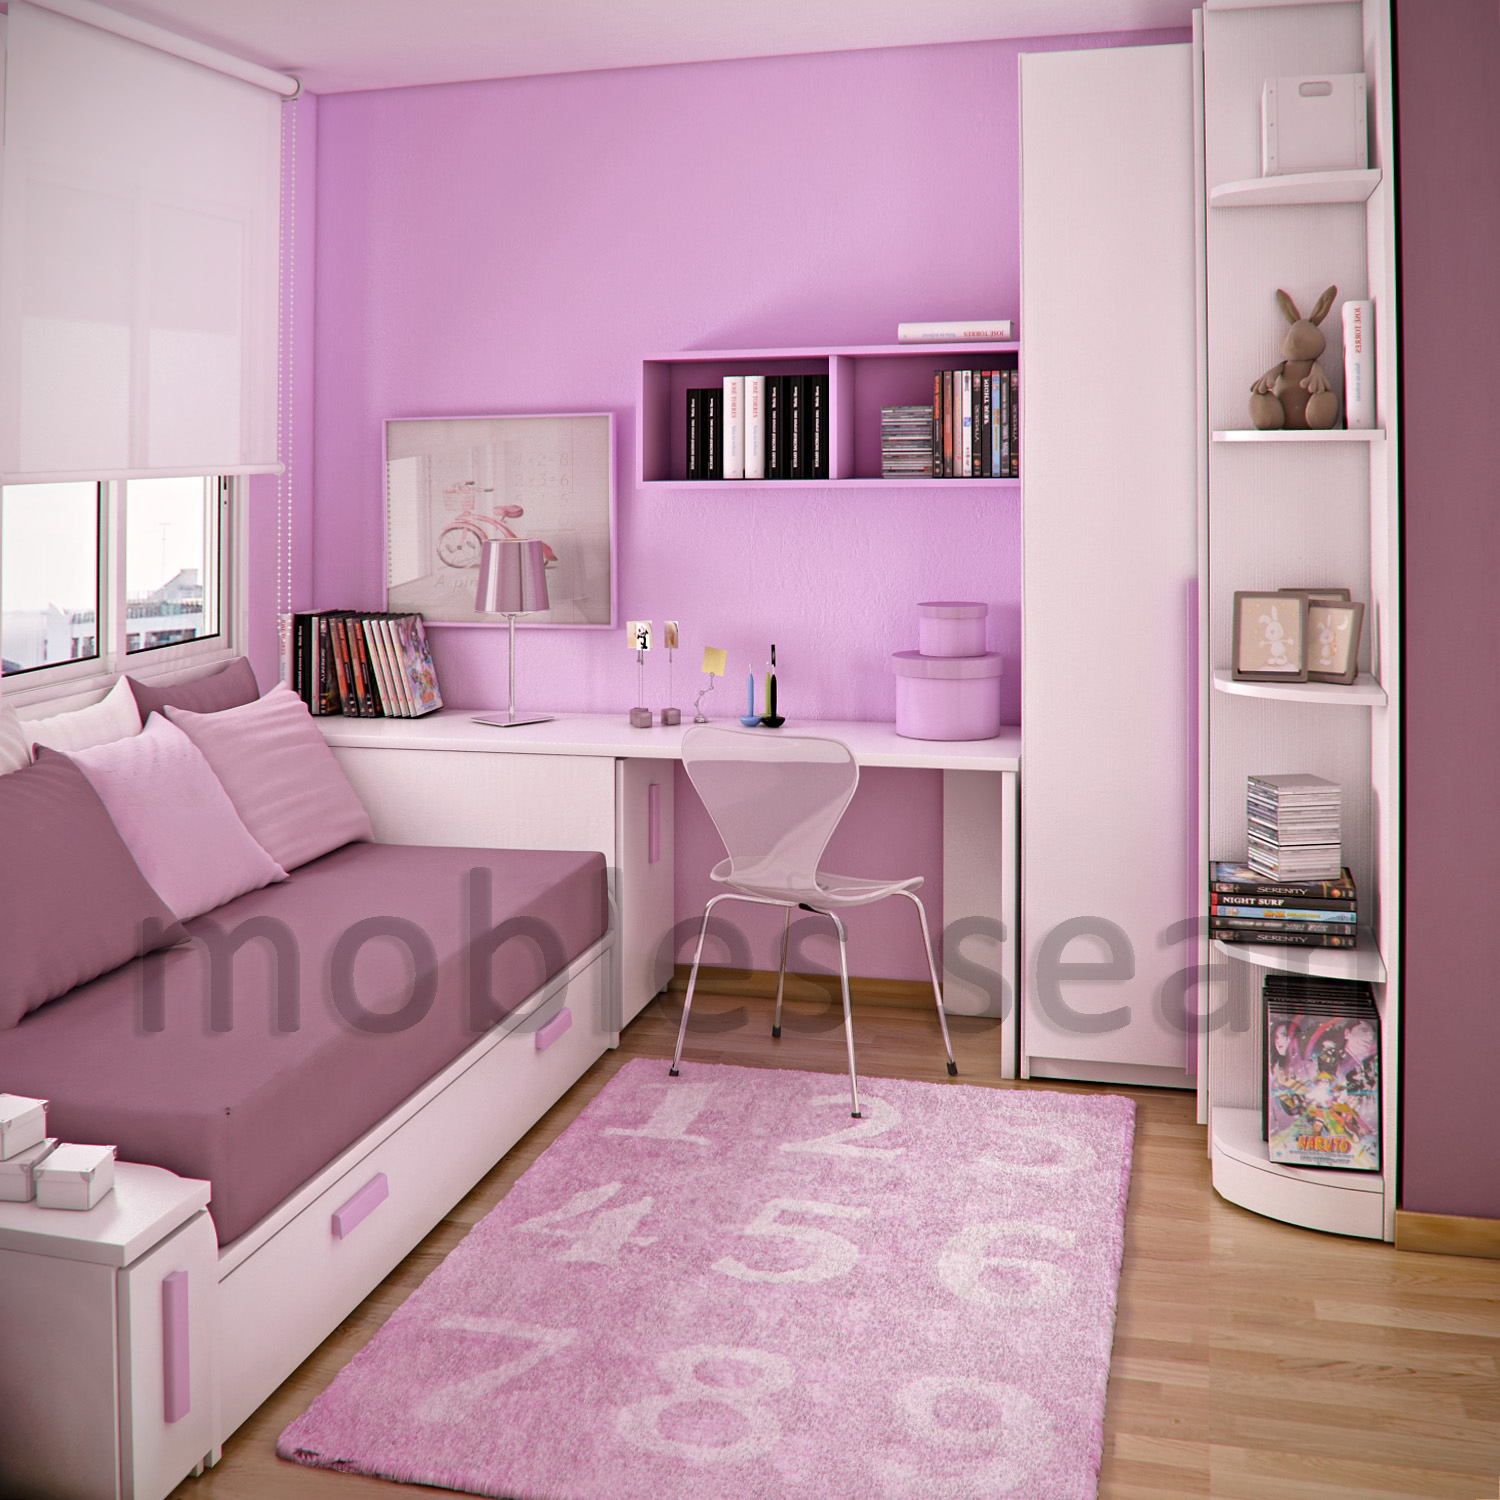 Kids Room Ideas For Girls Space Saving Designs For Small Kids Rooms